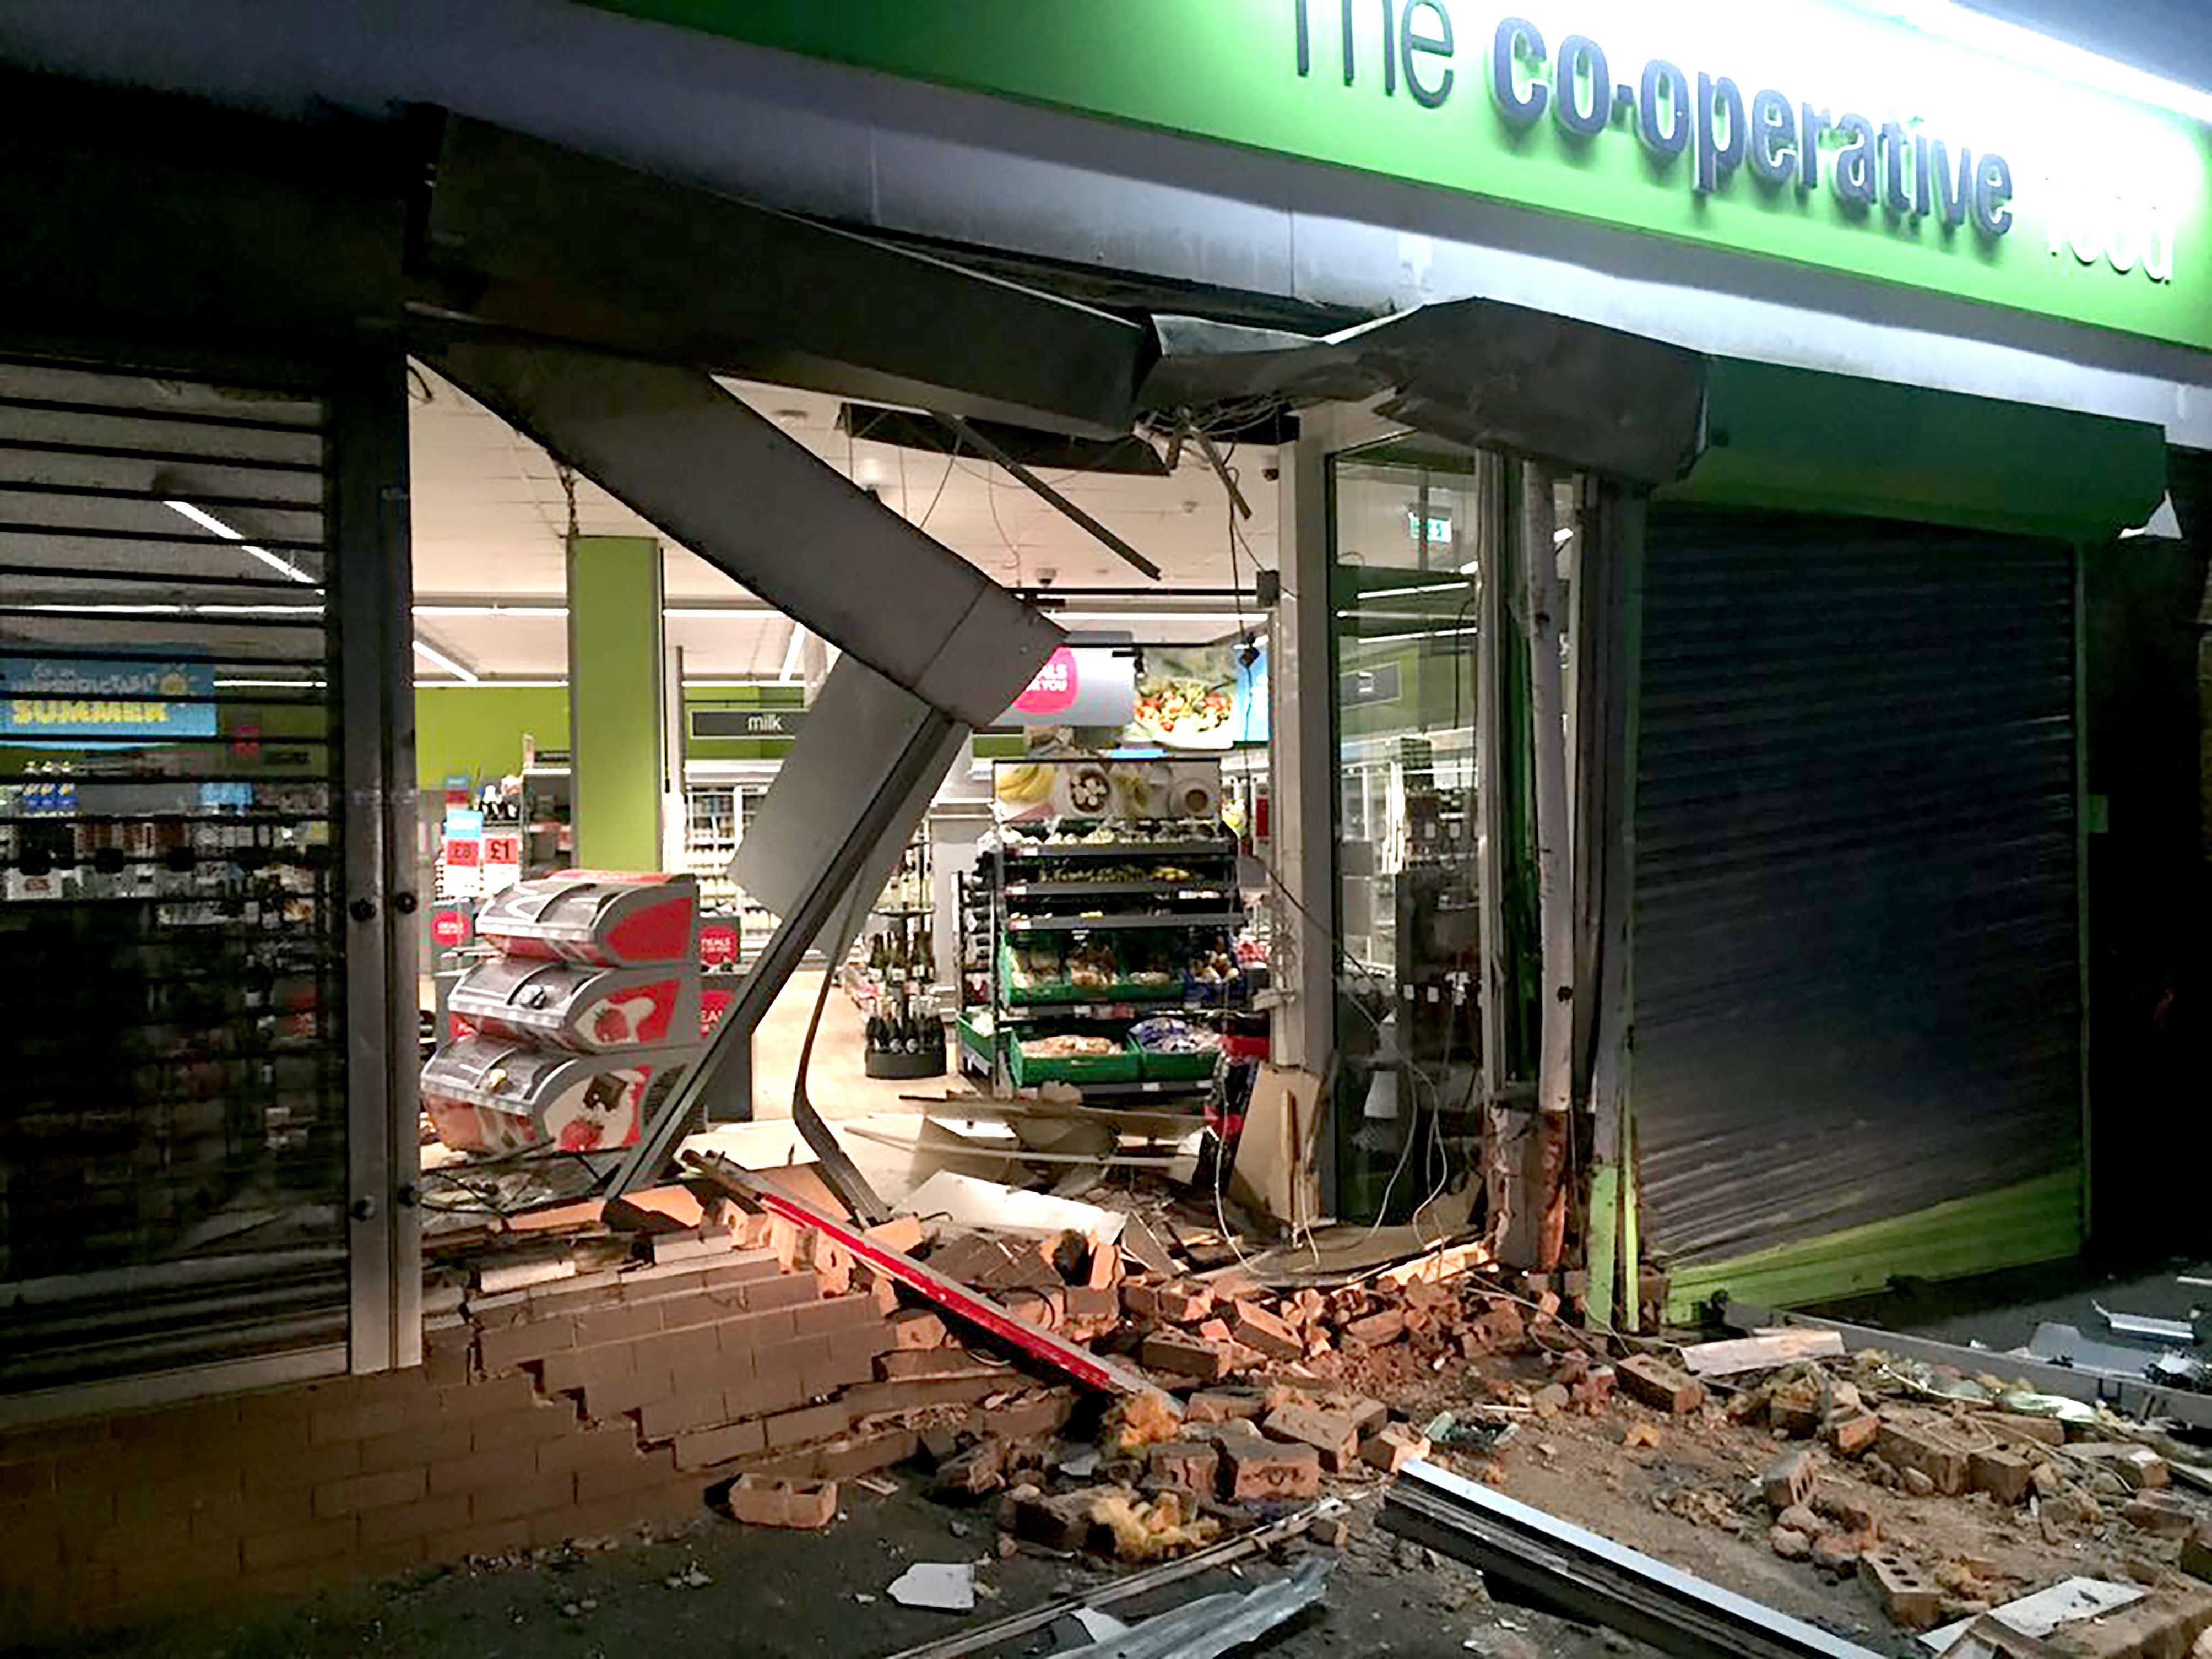 A gang of thieves used a digger to steal a cash machine in